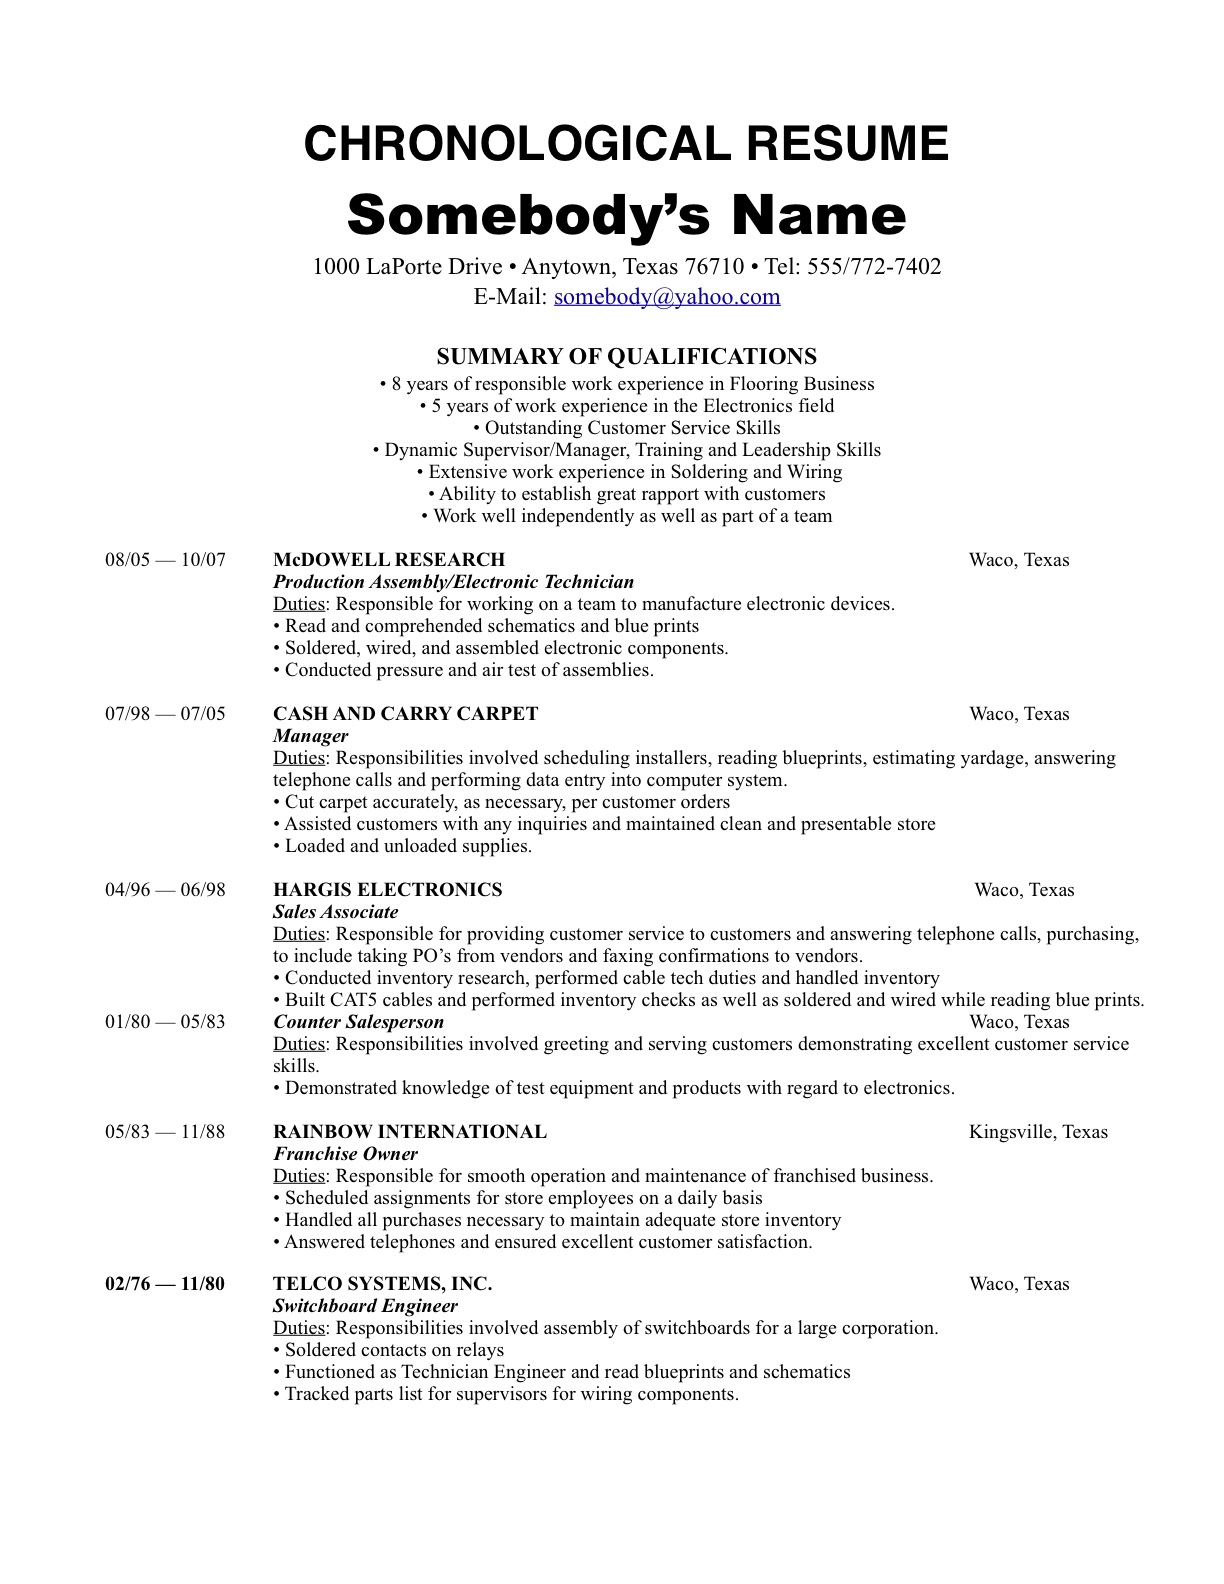 resume chronological order resume order resume order